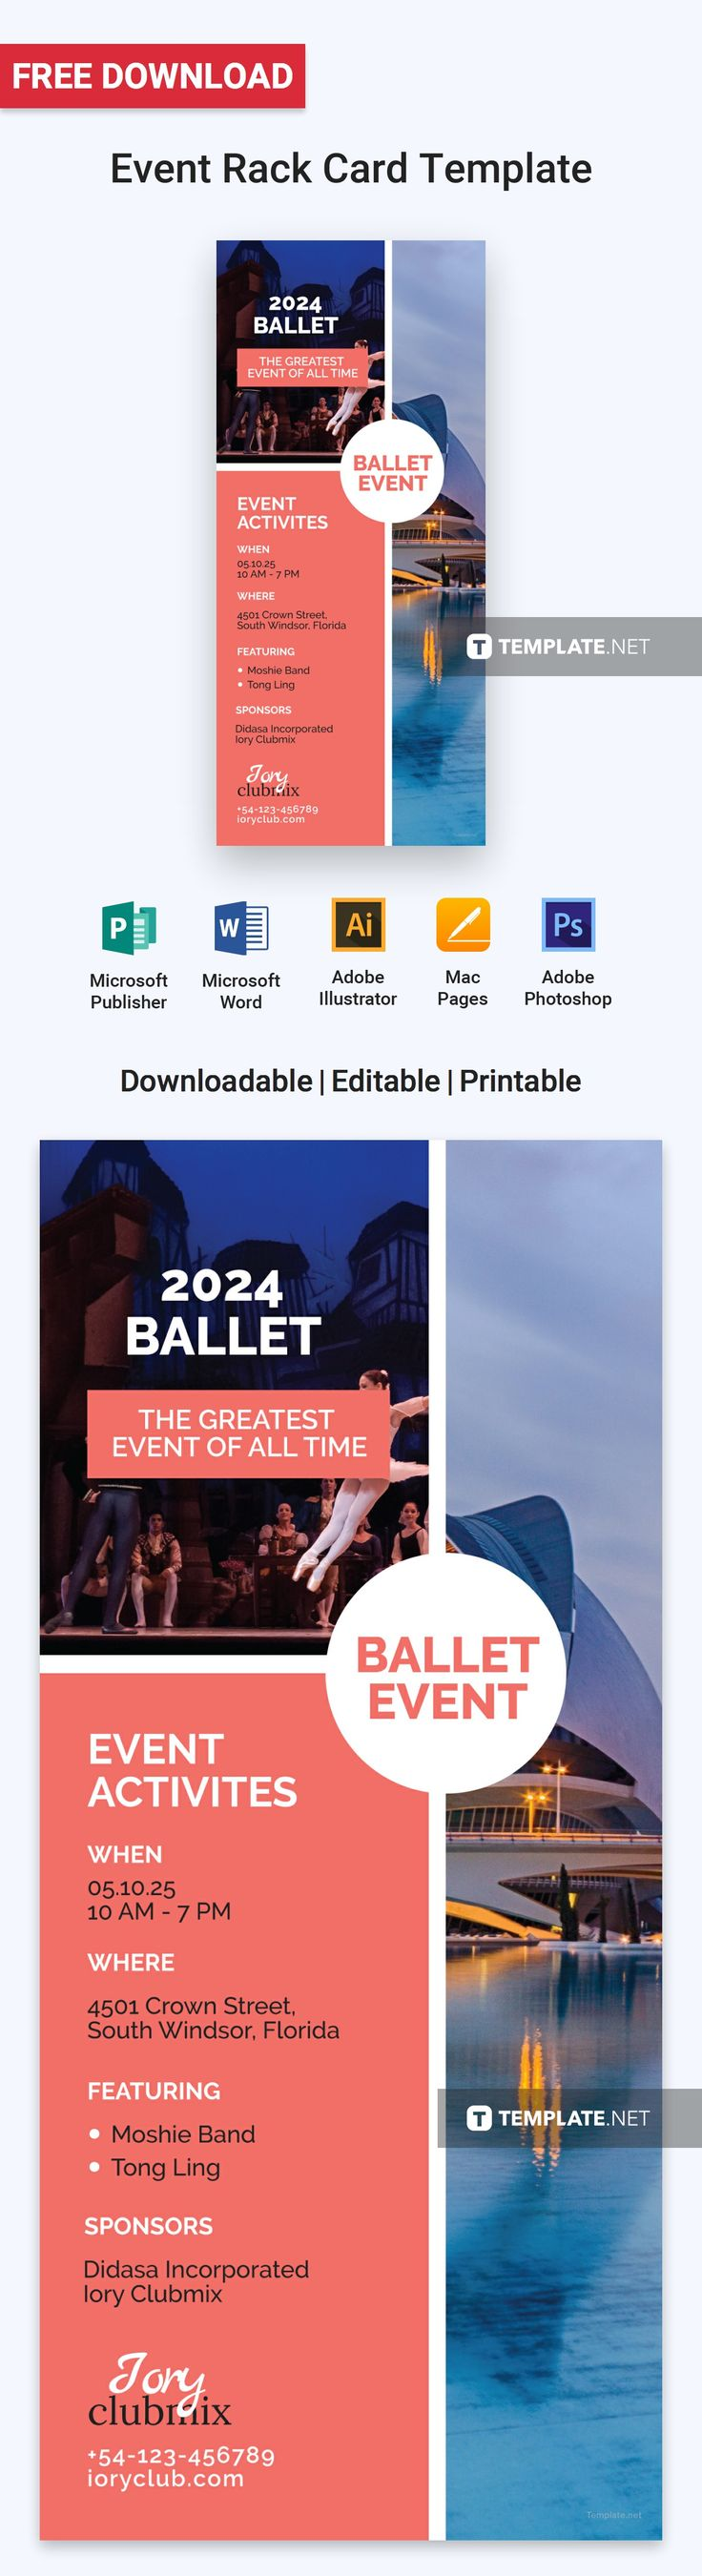 The Best Free Rack Card Templates Images On Pinterest - Free rack card template